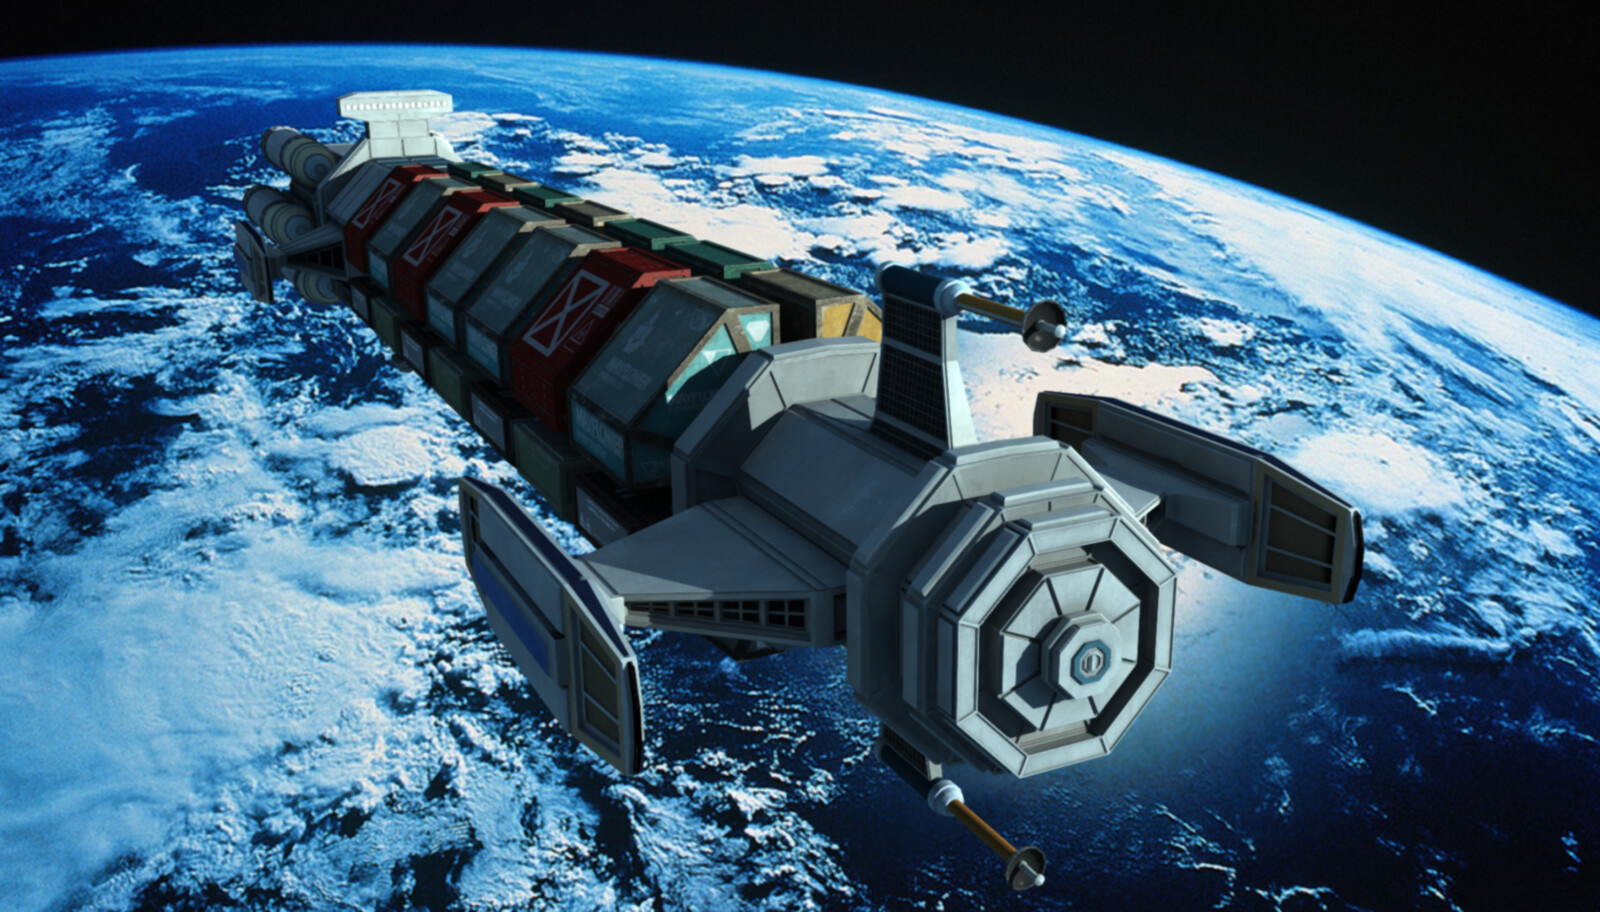 Science Fiction Space Transport -- Unproduced Indie Science Fiction Film